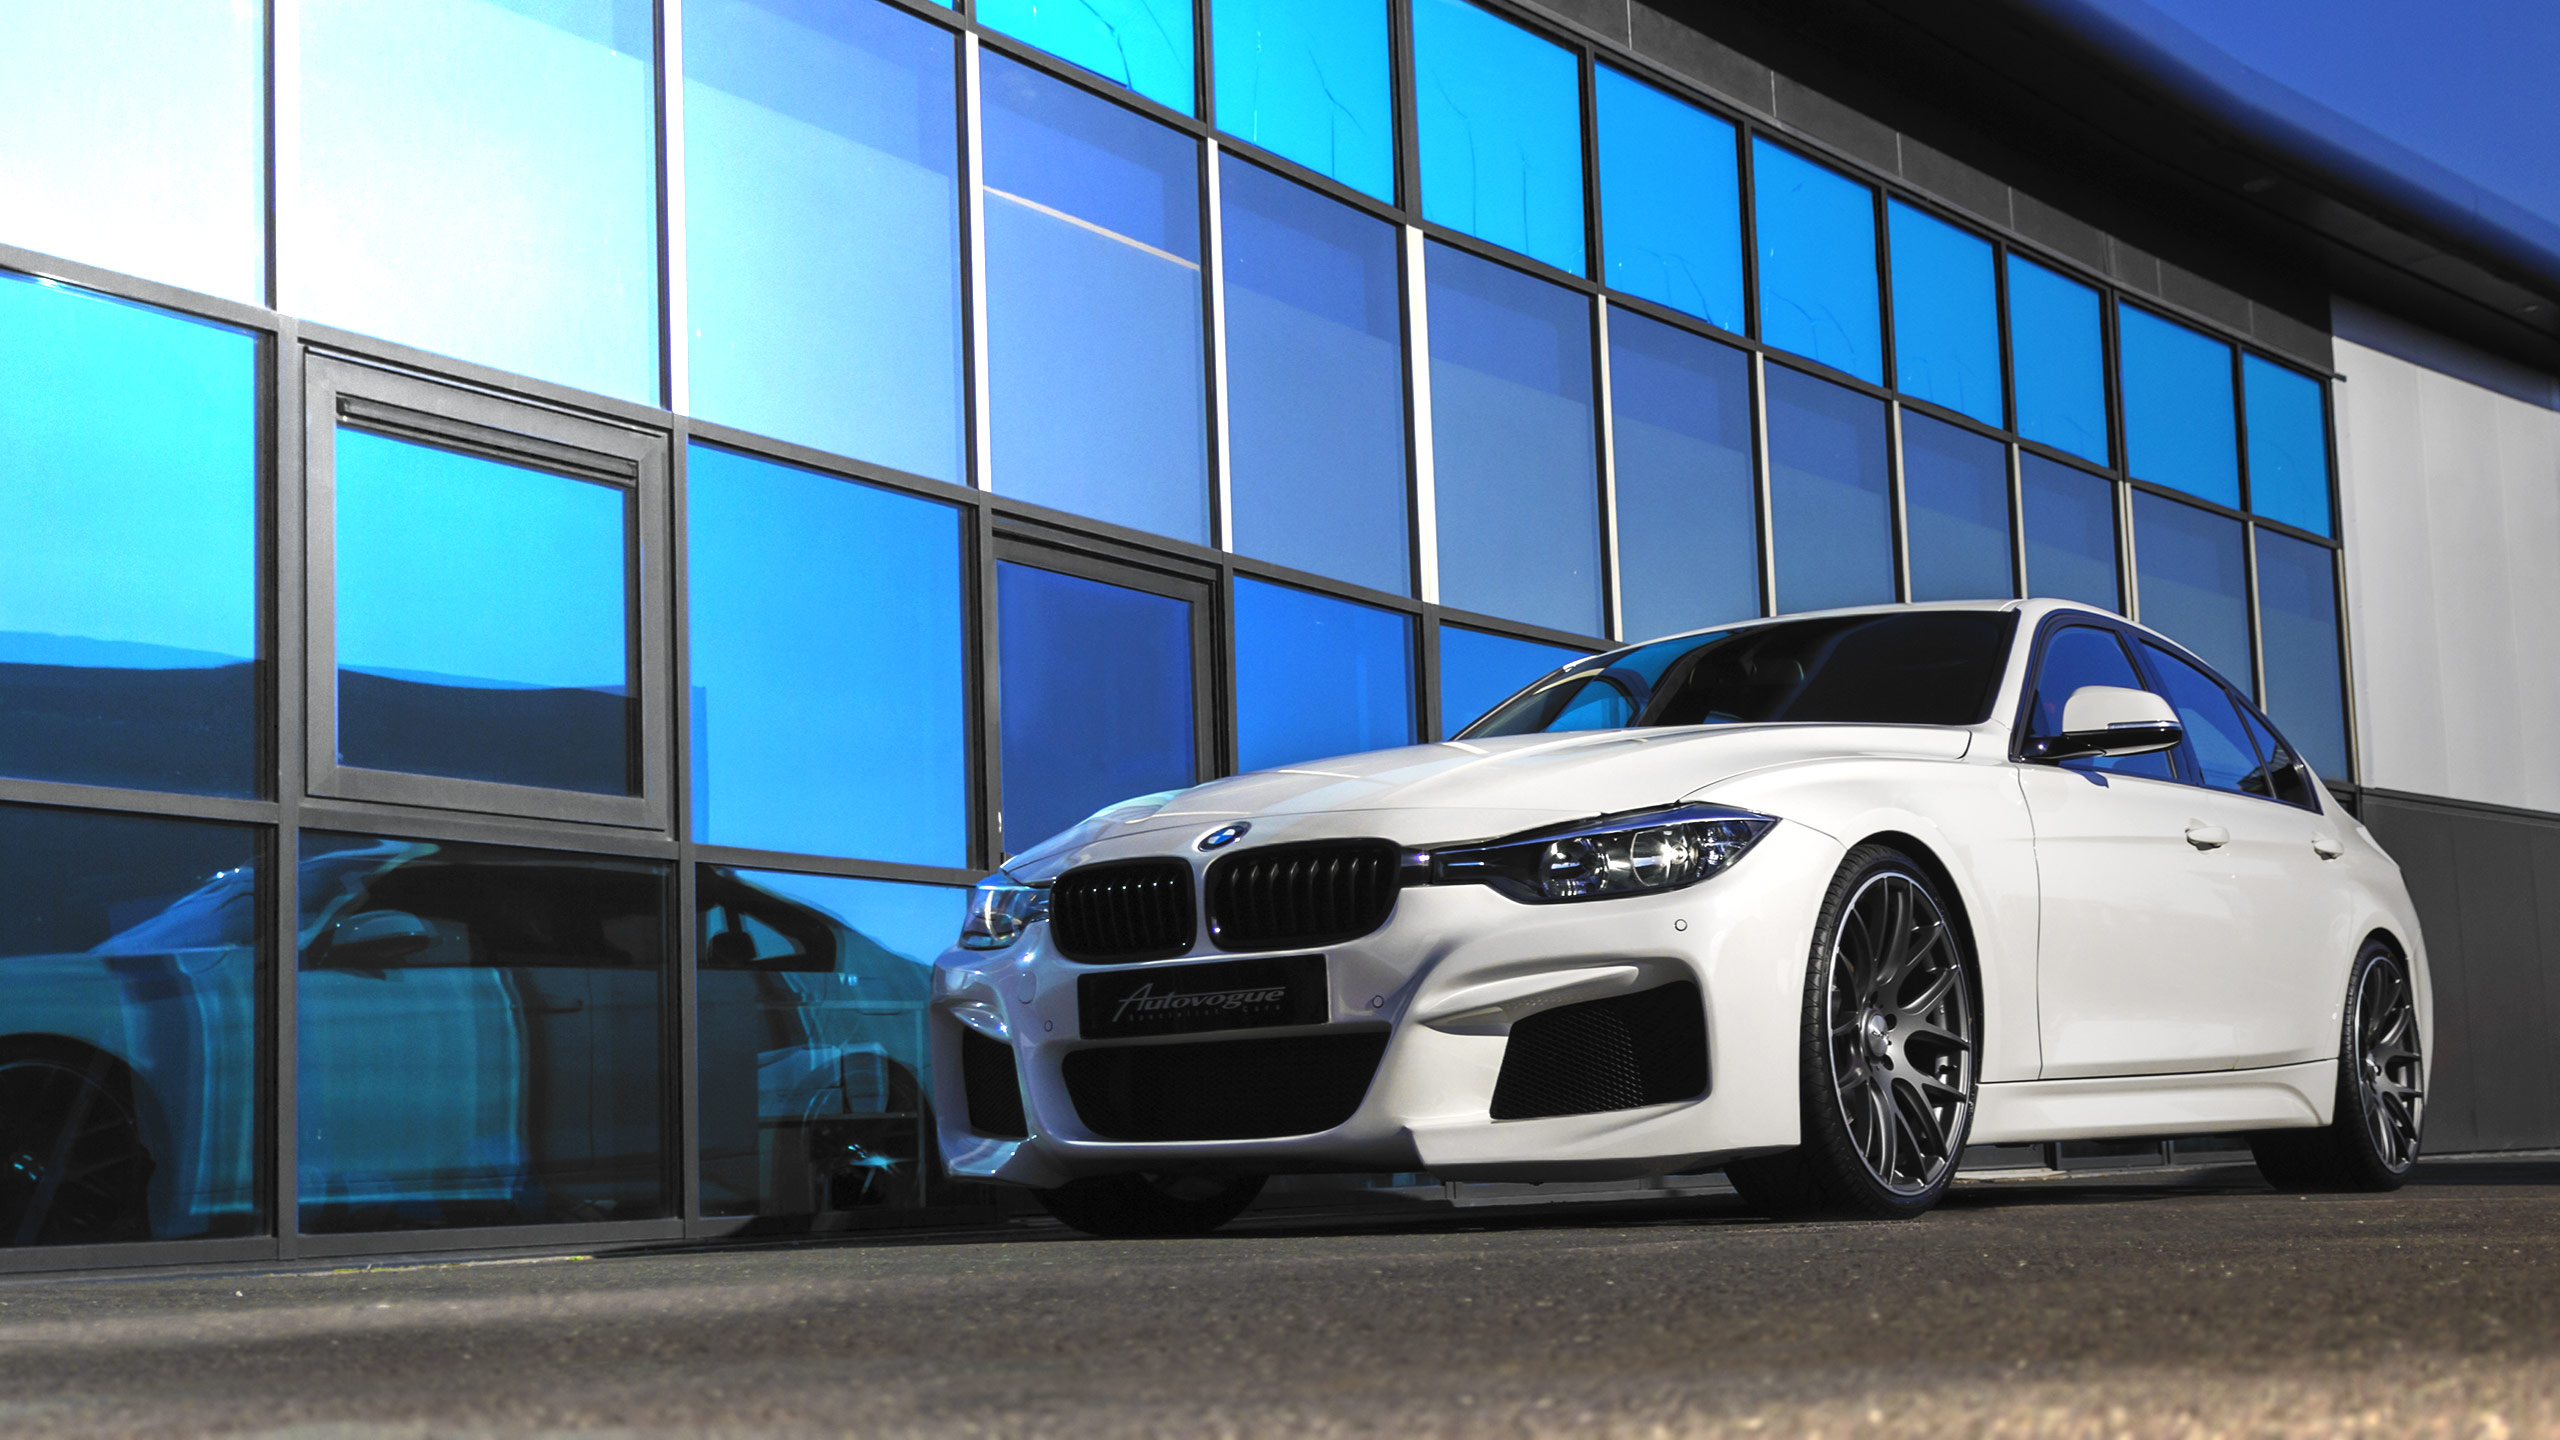 BMW 3 SERIES F30 AVR BY AUTOVOGUE